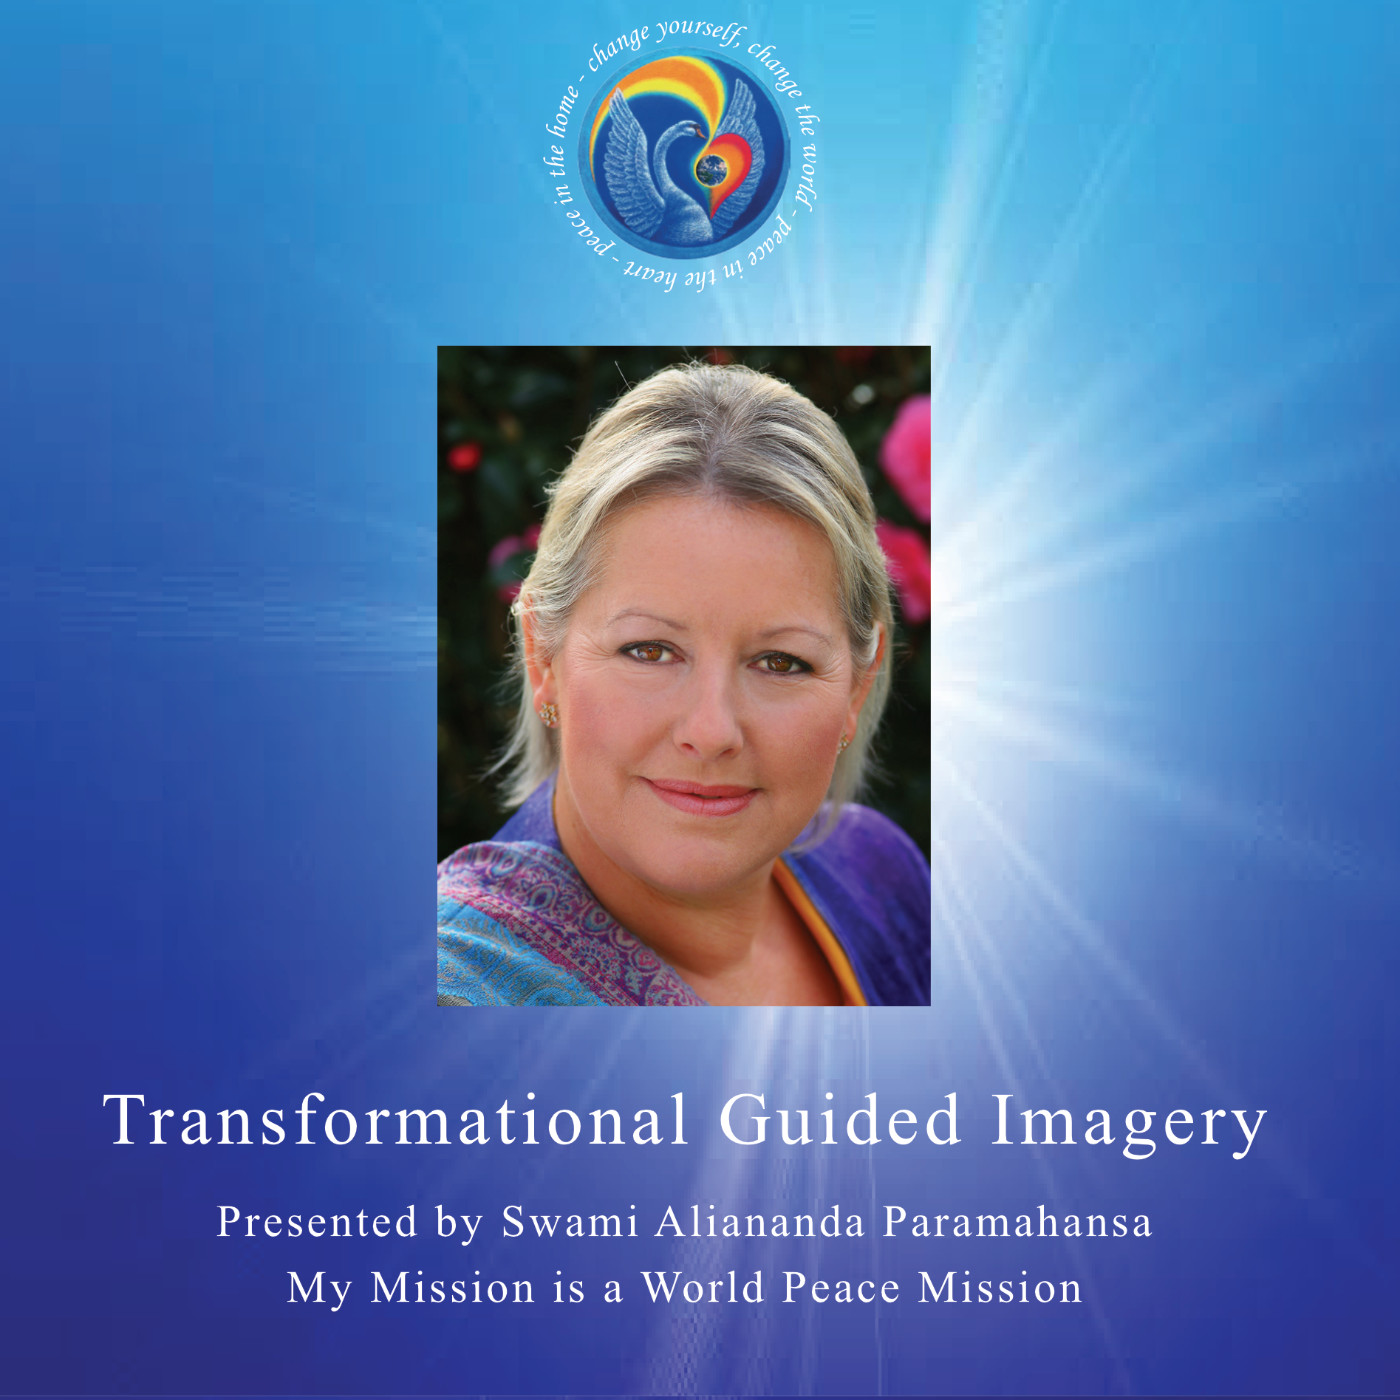 Transformational Guided Inagery